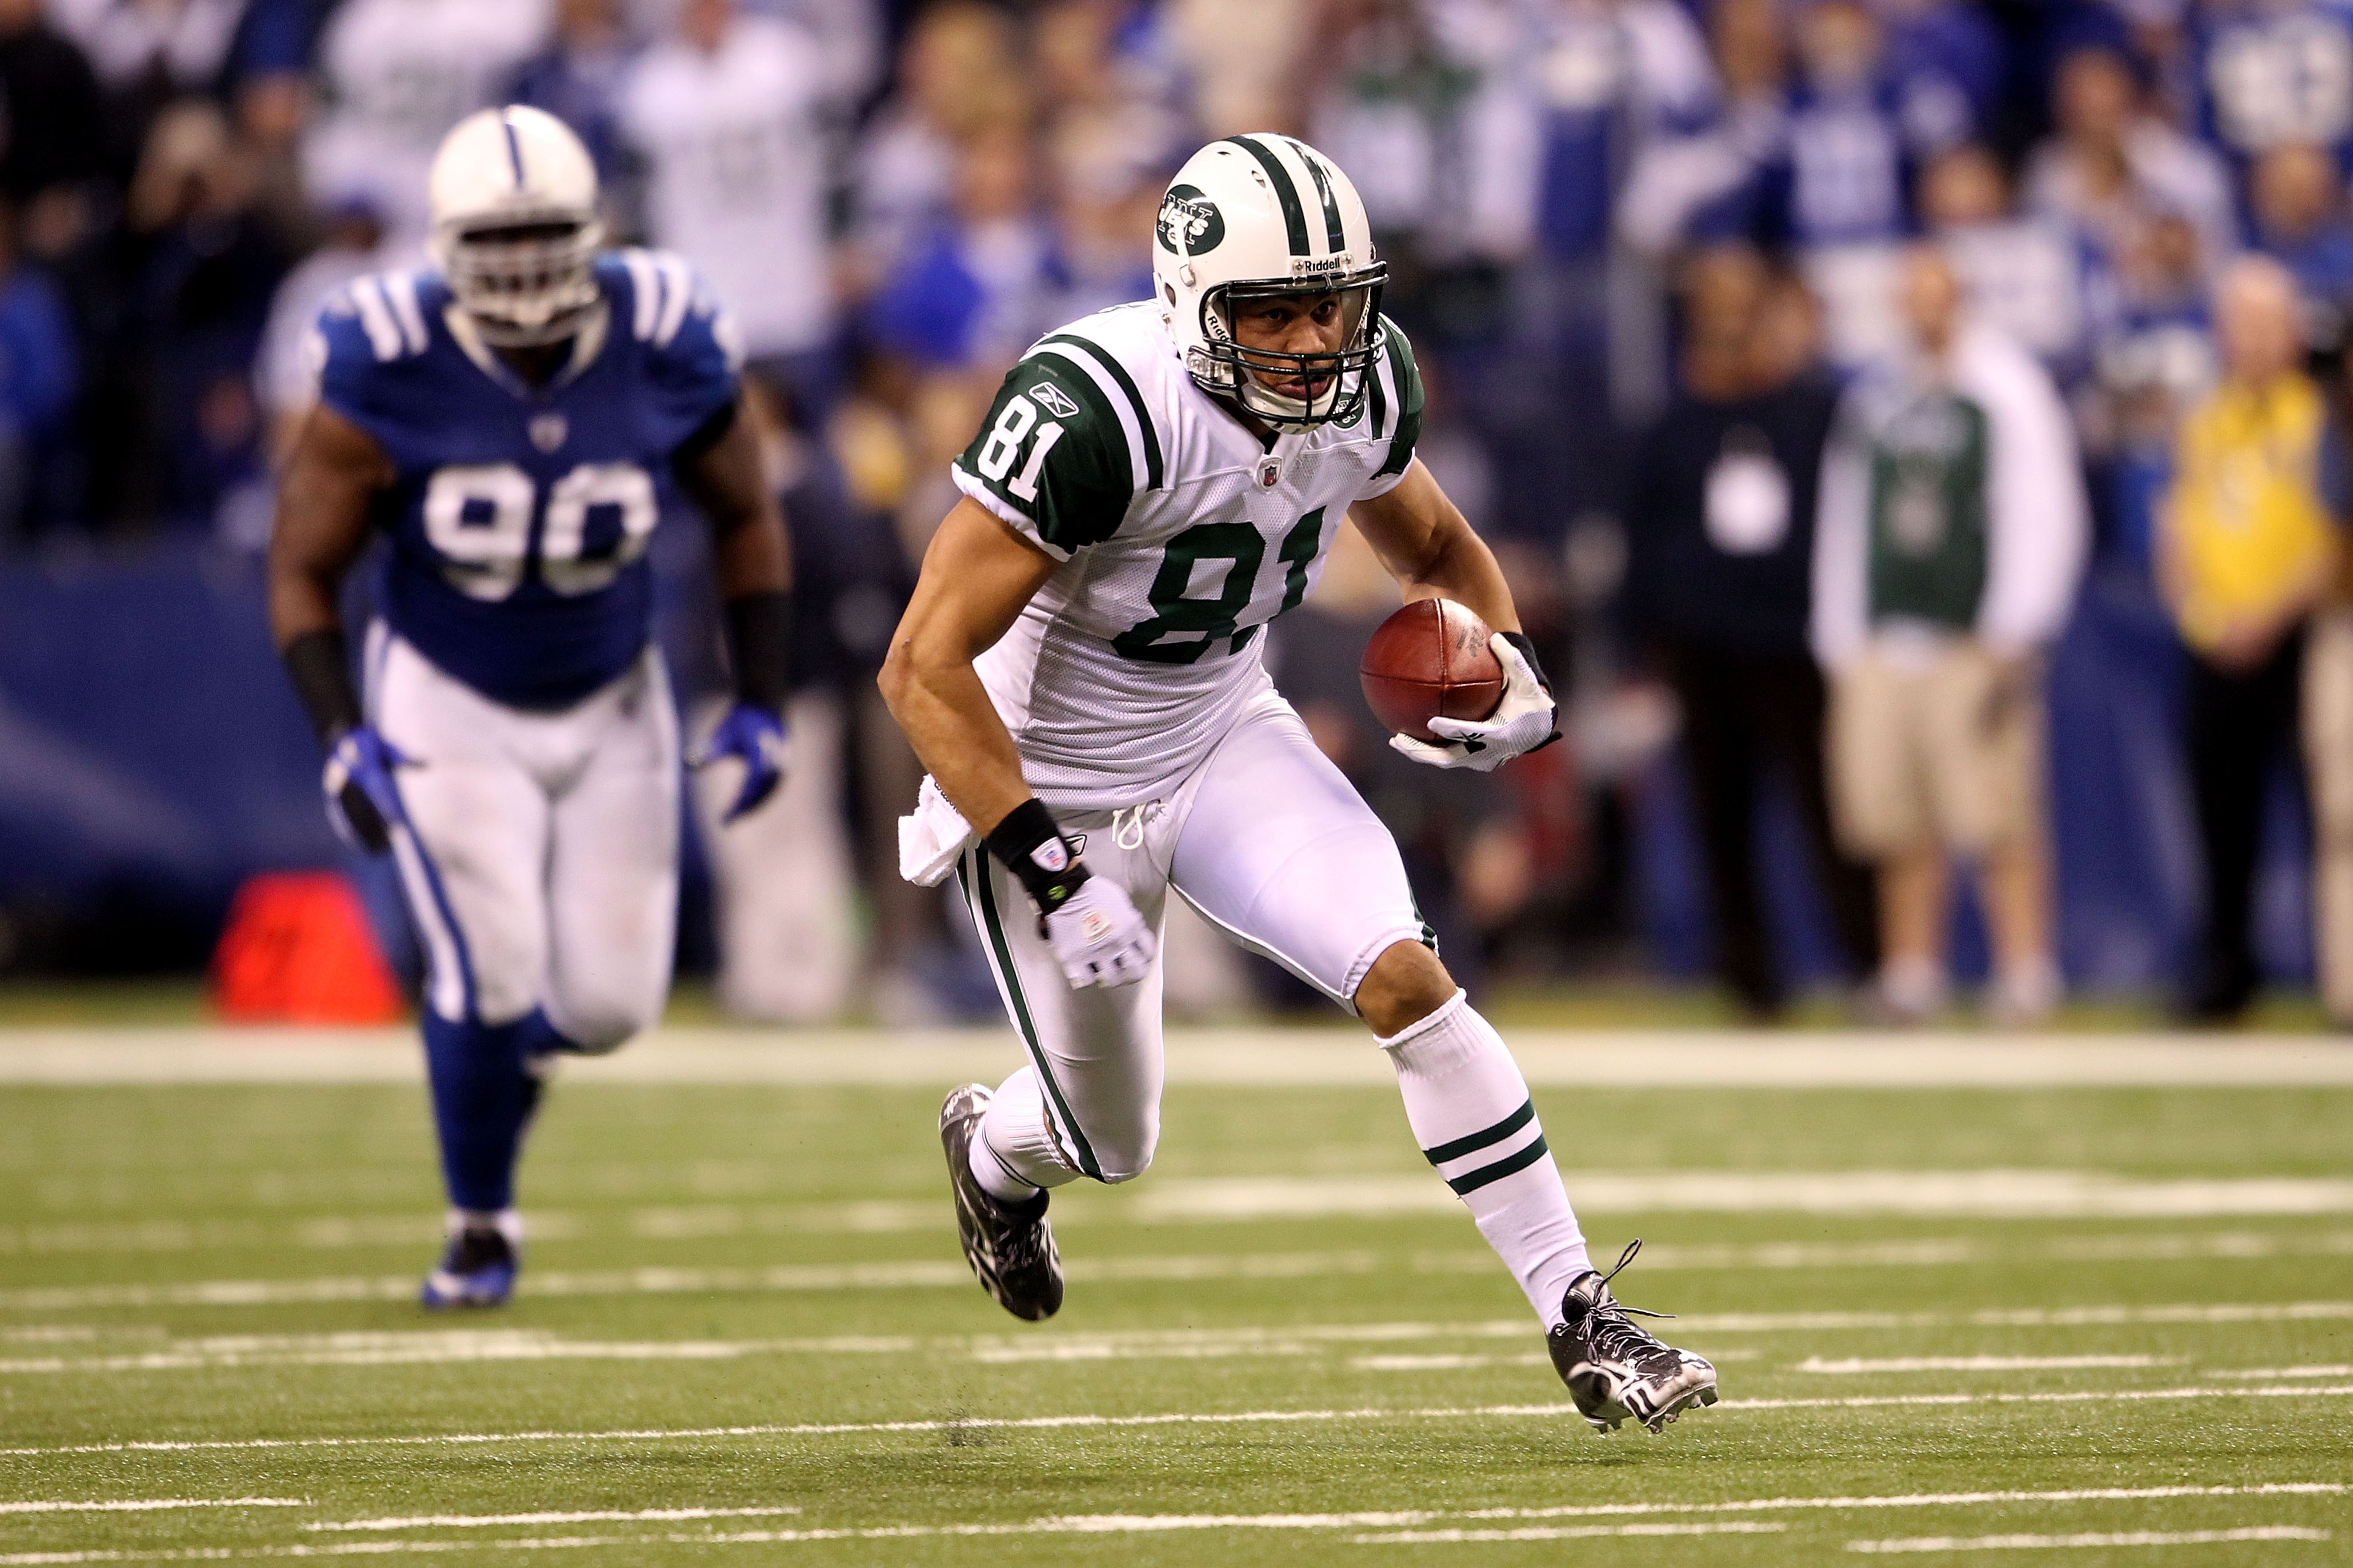 INDIANAPOLIS, IN - JANUARY 08:  Dustin Keller #81 of the New York Jets runs for yards after the catch against the Indianapolis Colts during their 2011 AFC wild card playoff game at Lucas Oil Stadium on January 8, 2011 in Indianapolis, Indiana.  (Photo by